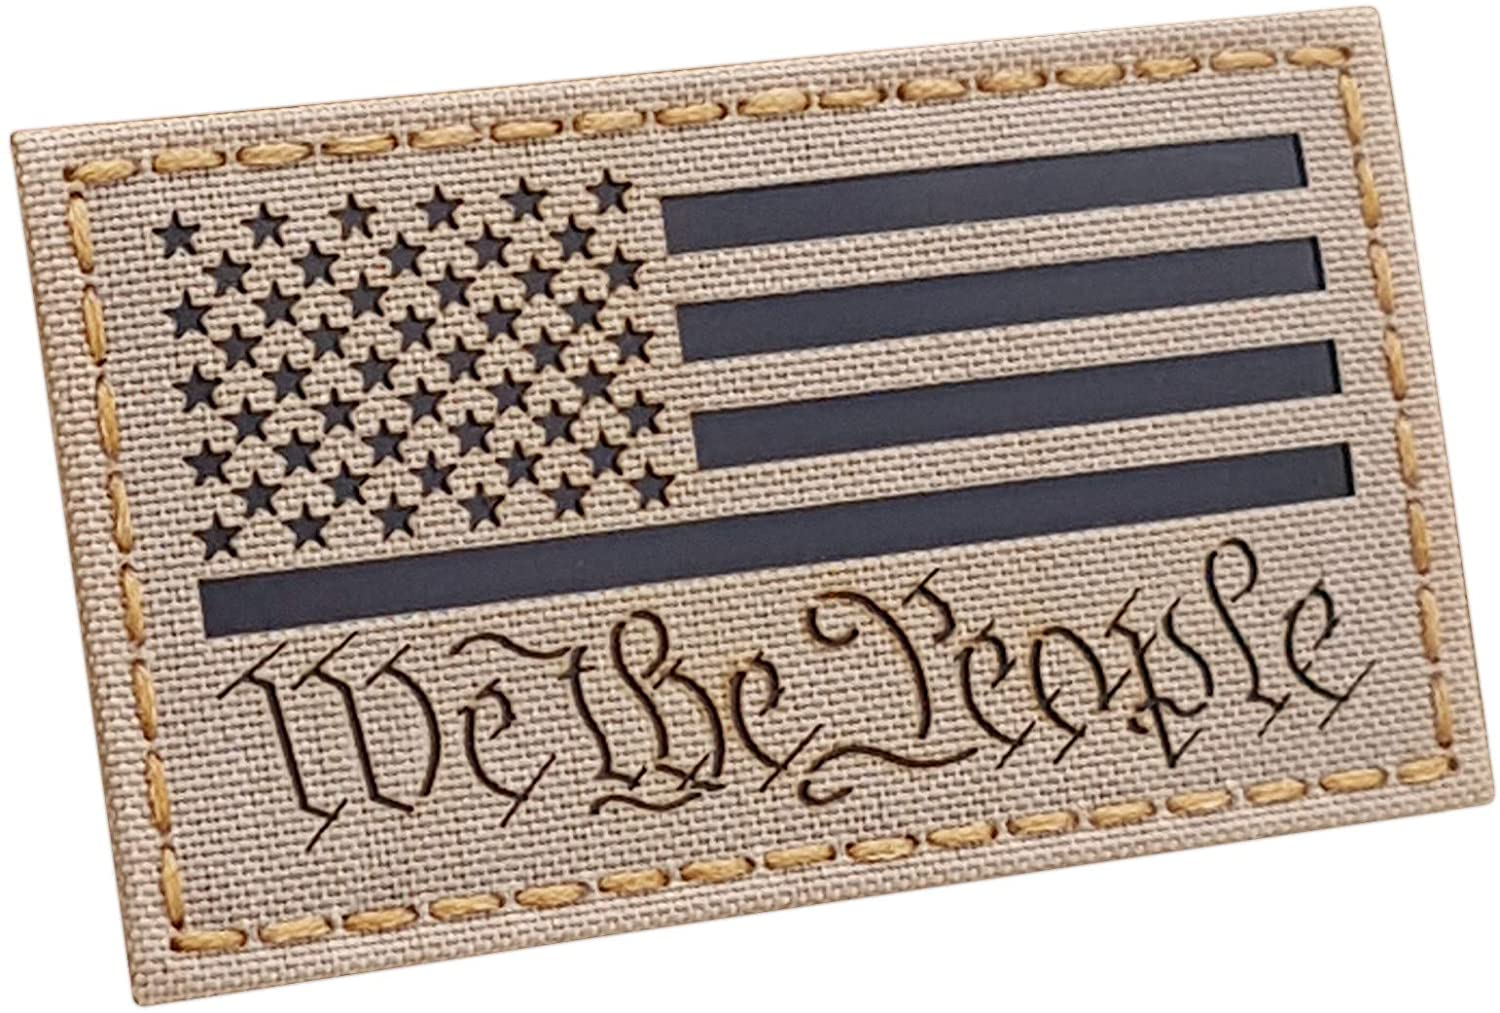 Tactical Freaky IR We The People America USA Flag Desert Sand Tan 2nd Amendment 2A ConstitutionTactical Morale Hook&Loop Patch